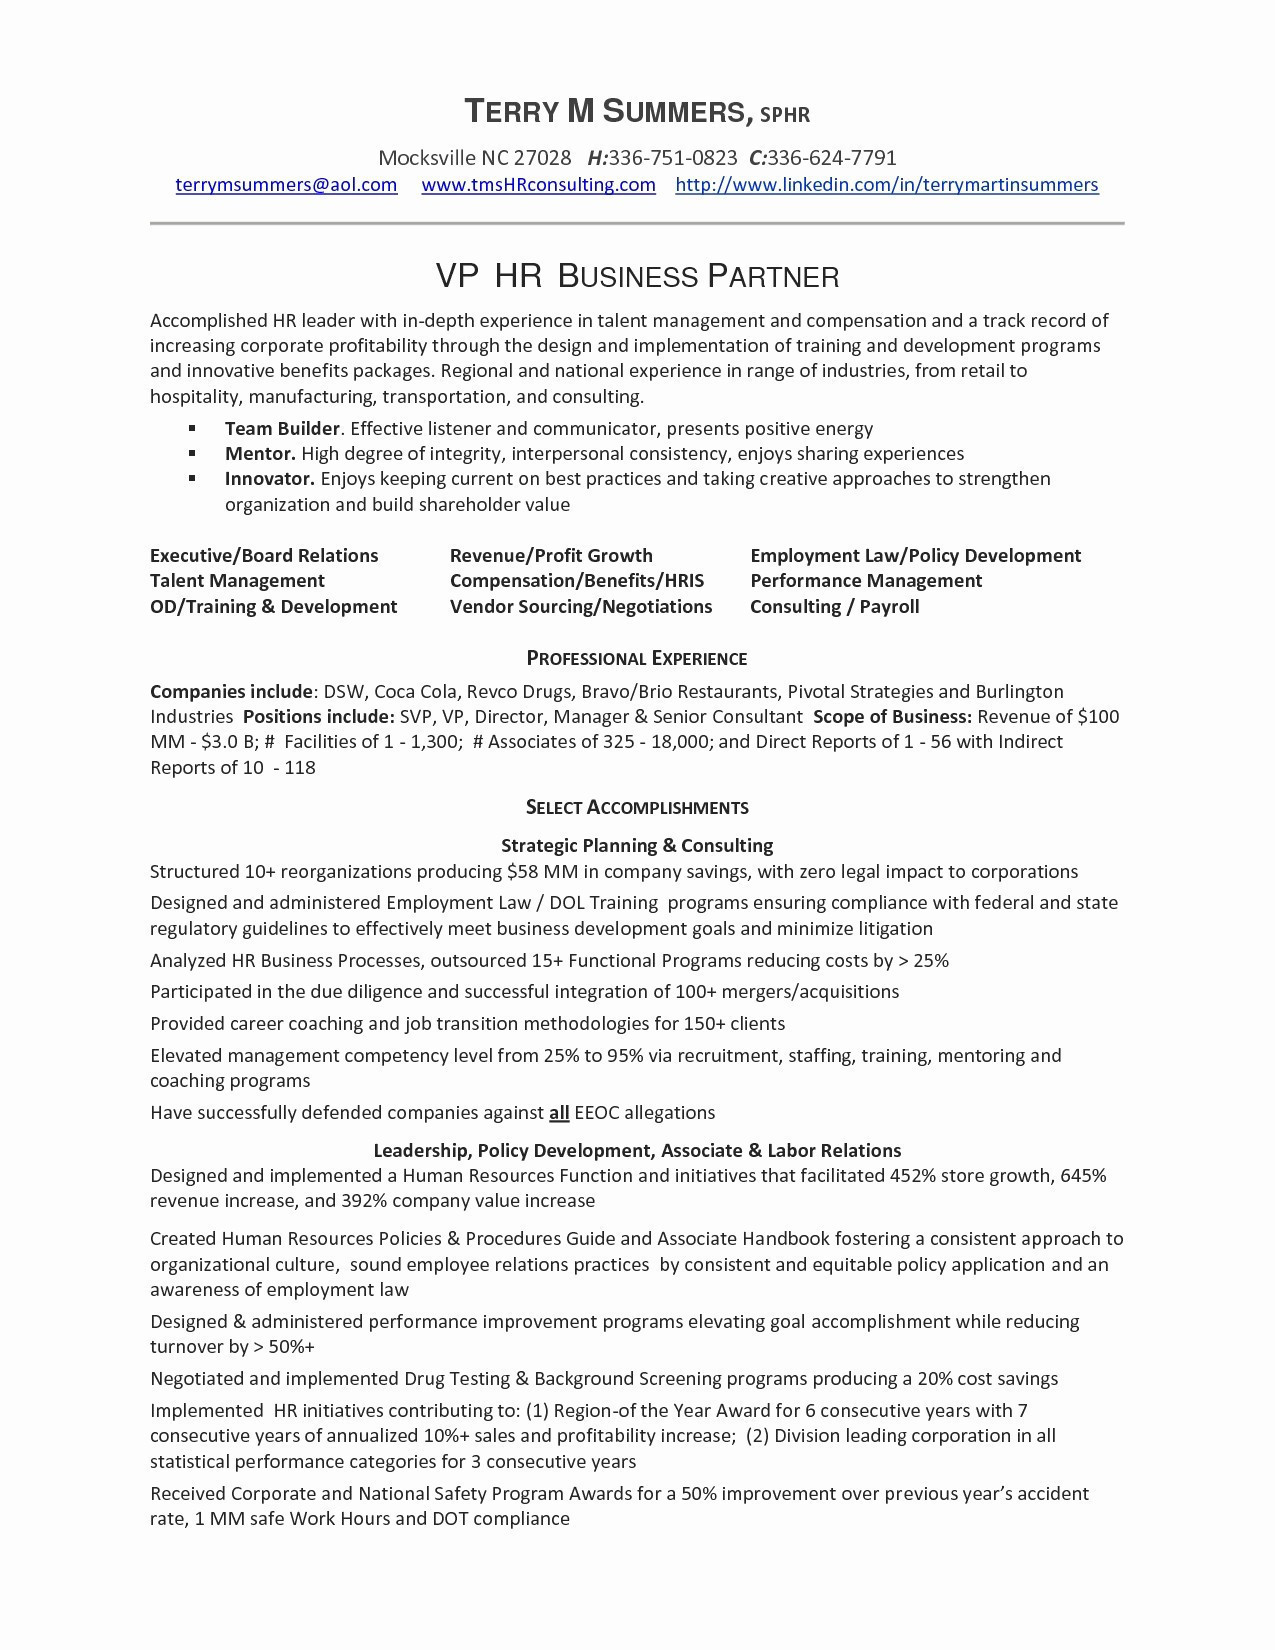 Resume Template Construction - Resume Templates for Construction Workers Fresh Construction Worker